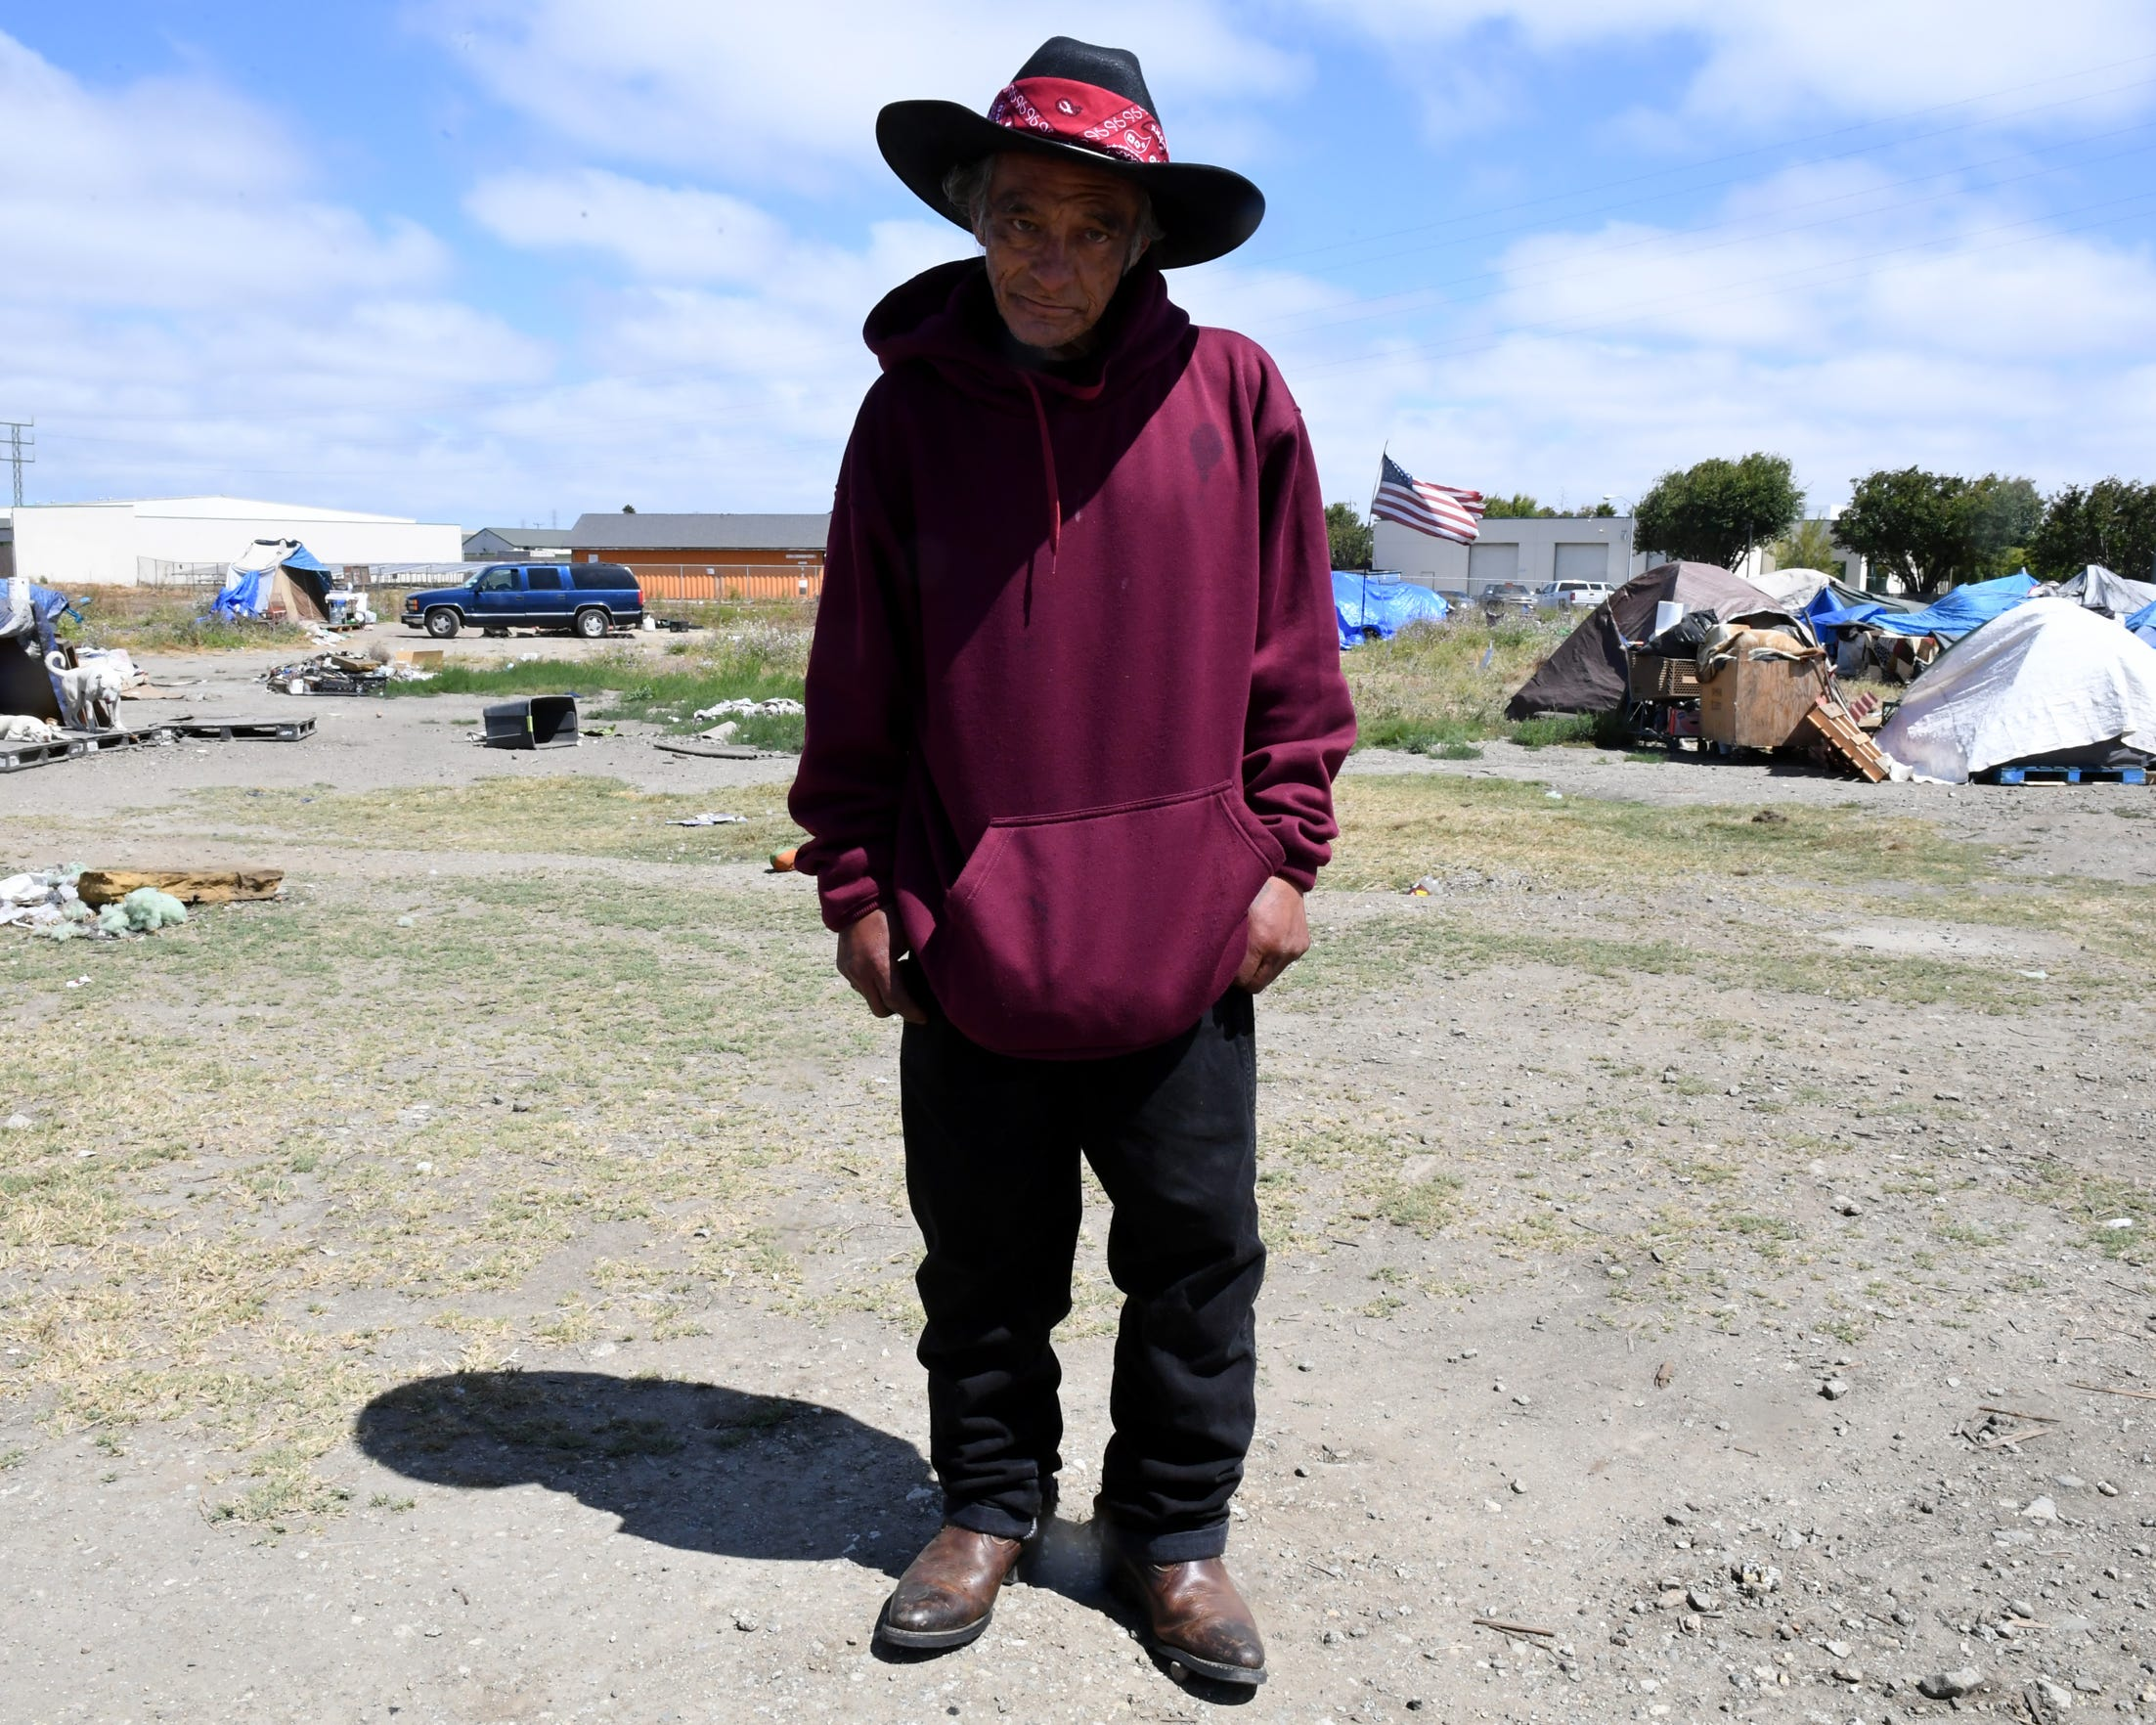 Adrian Morfin stands in the place where his RV was confiscated by Salinas police officers earlier this summer. July 3, 2019.